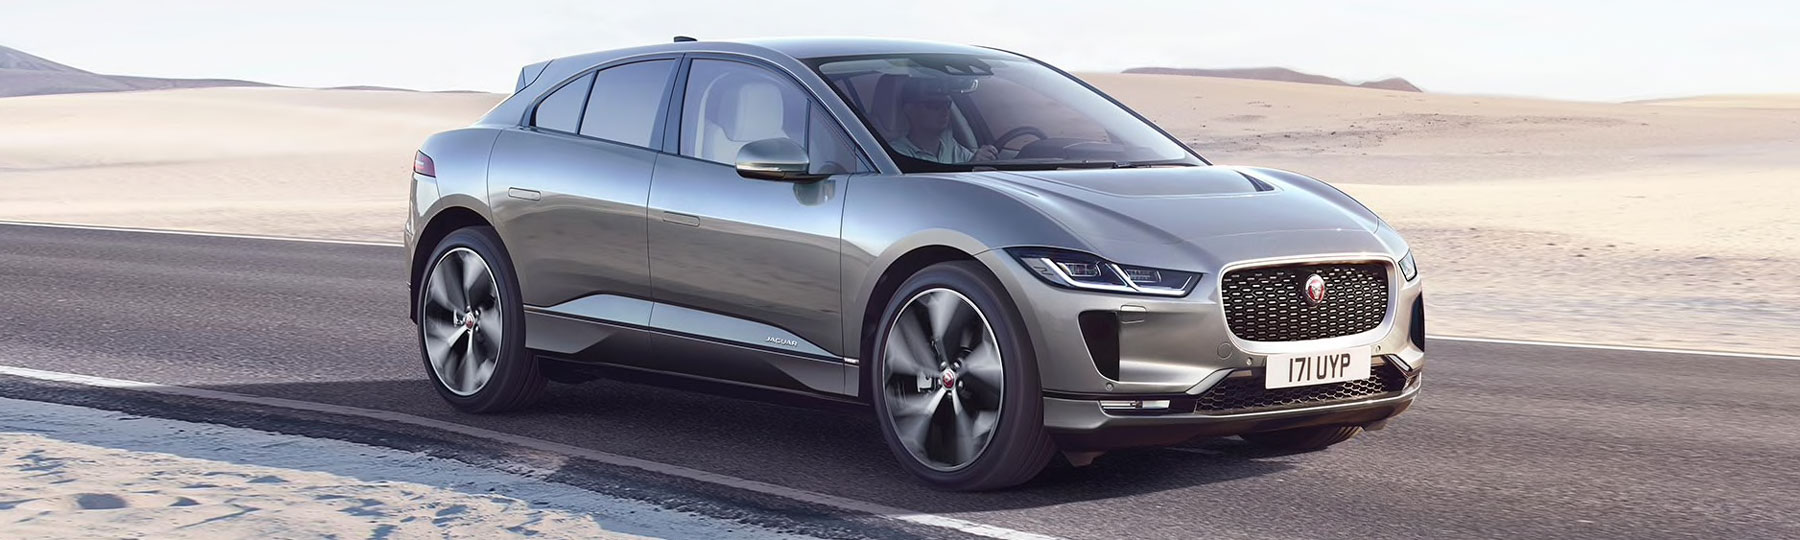 All Electric Jaguar I-PACE Business Offer